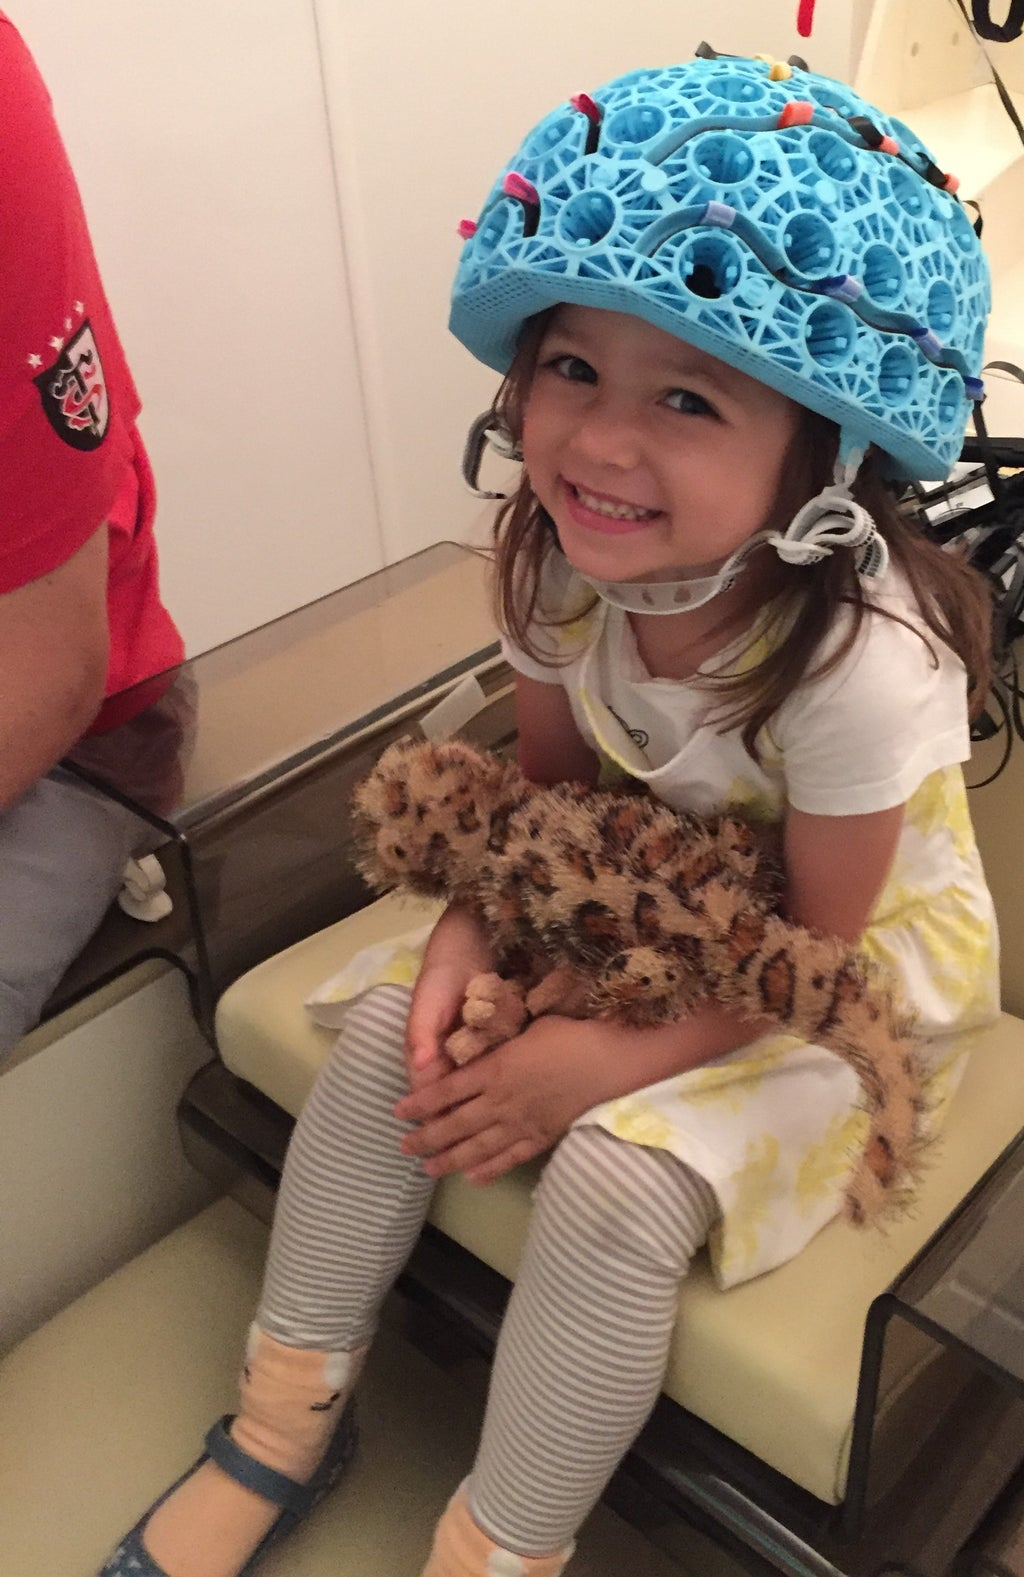 New helmet-style brain scanner offers hope to children with epilepsy